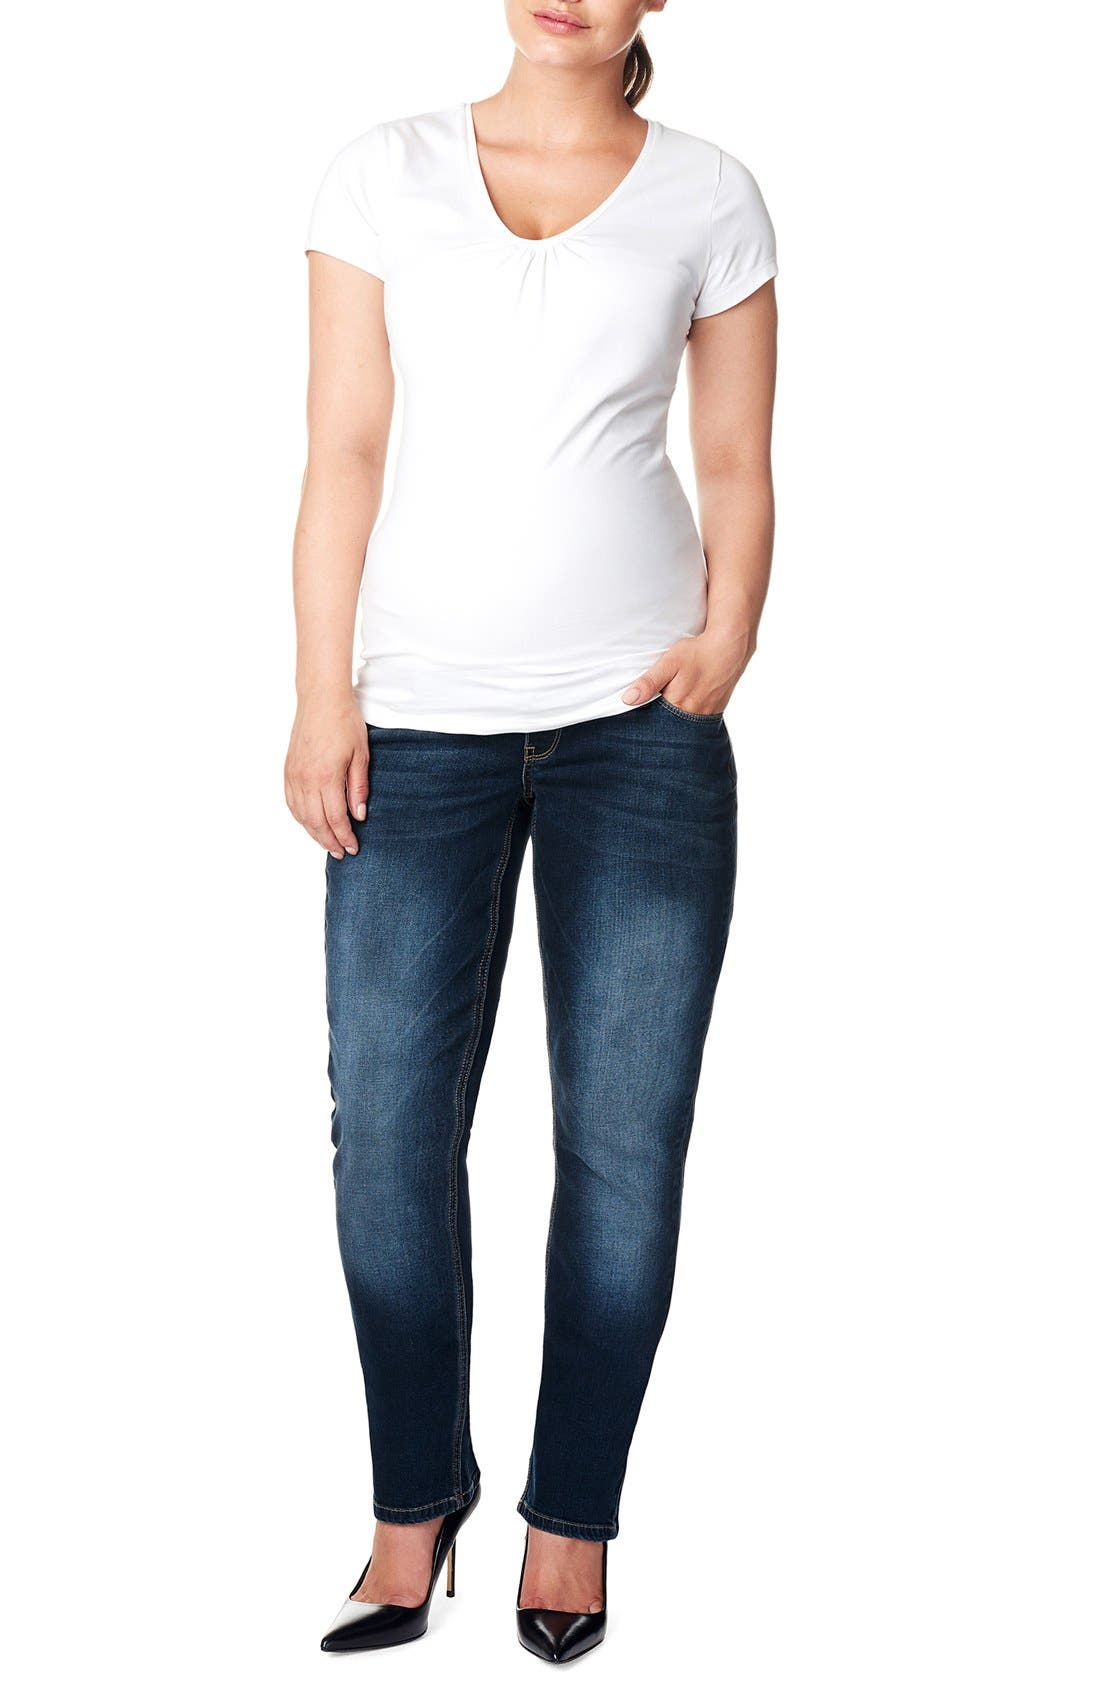 Main Image - Noppies 'Mena Comfort' Over the Belly Straight Leg Maternity Jeans (Plus Size)